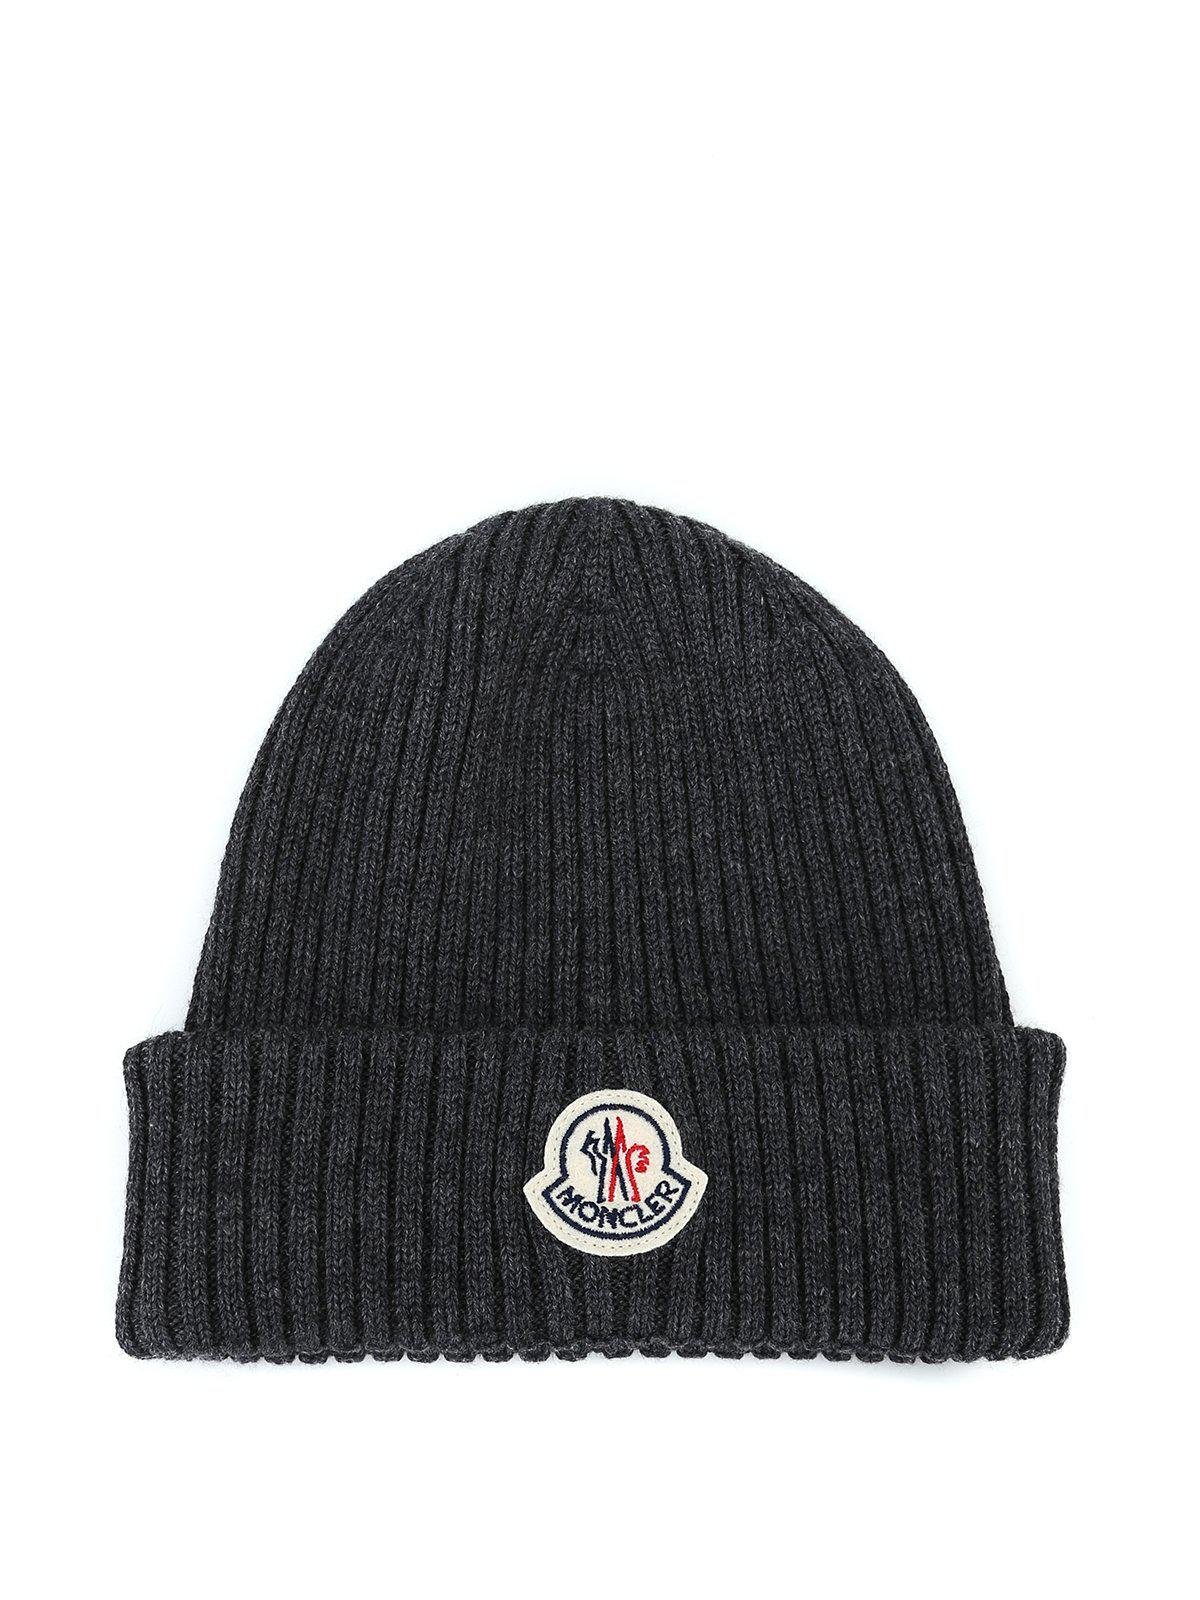 f71c9b7be68 Lyst - Moncler Logo Patch Beanie in Gray for Men